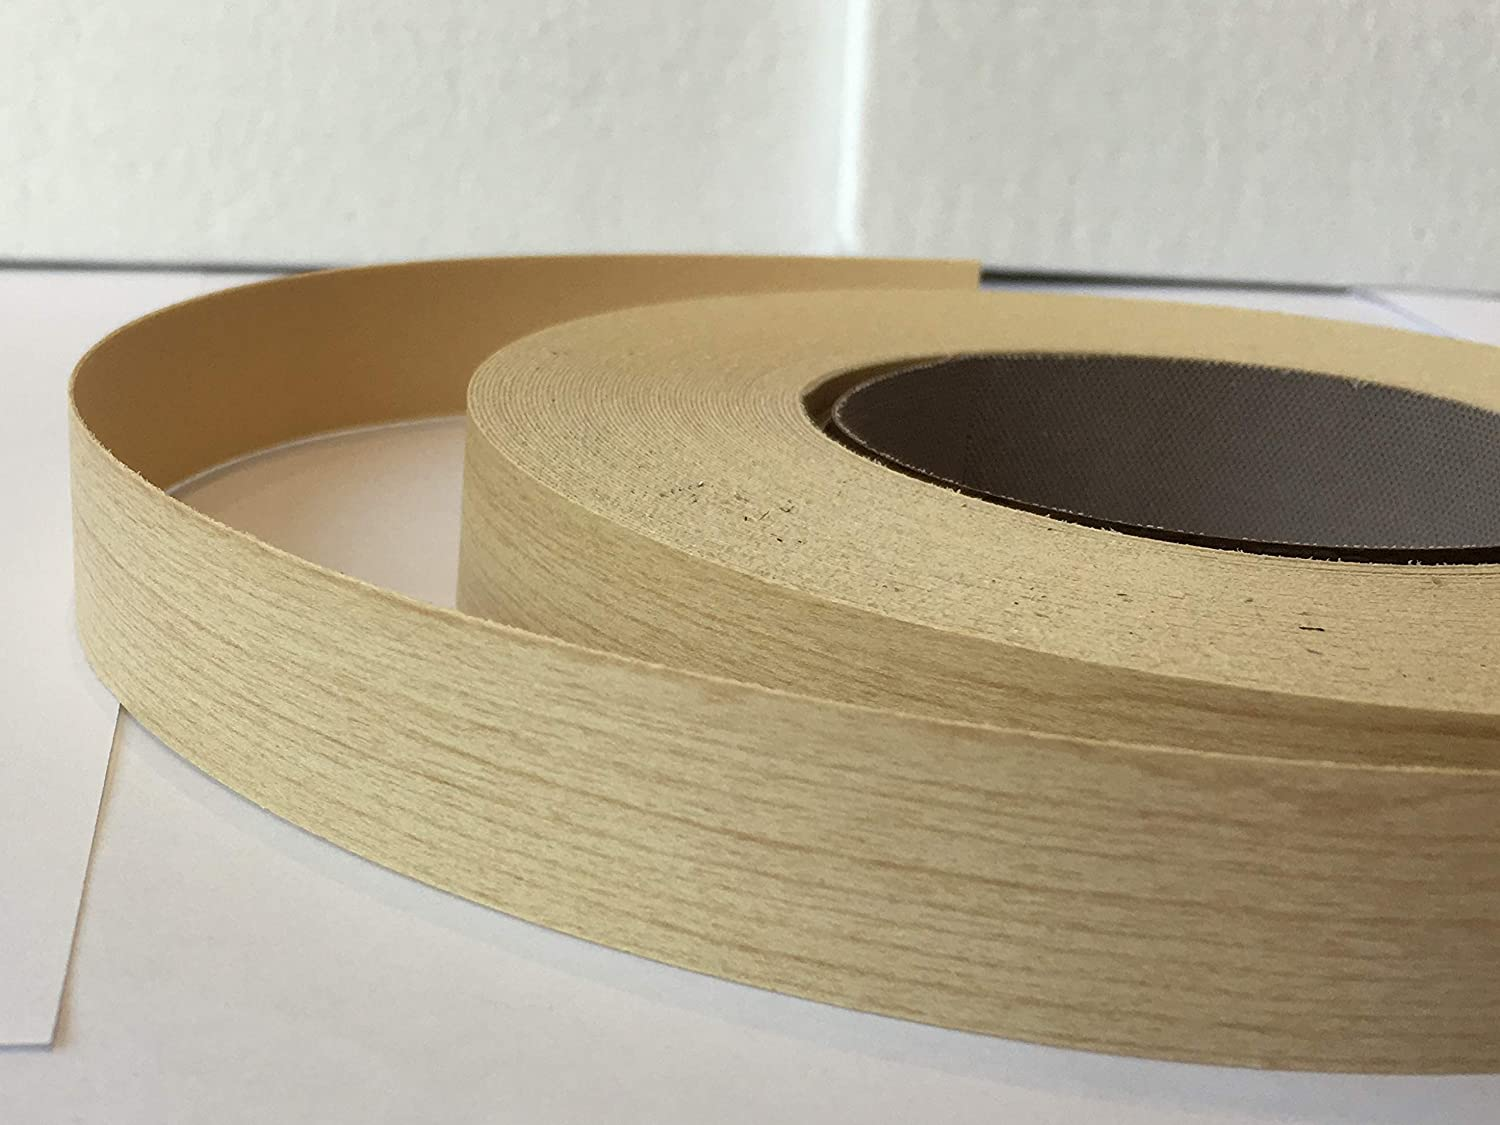 Pre Glued Iron on Melamine Maple Edging Tape 22mm wide x 5 Metres...Free Postage